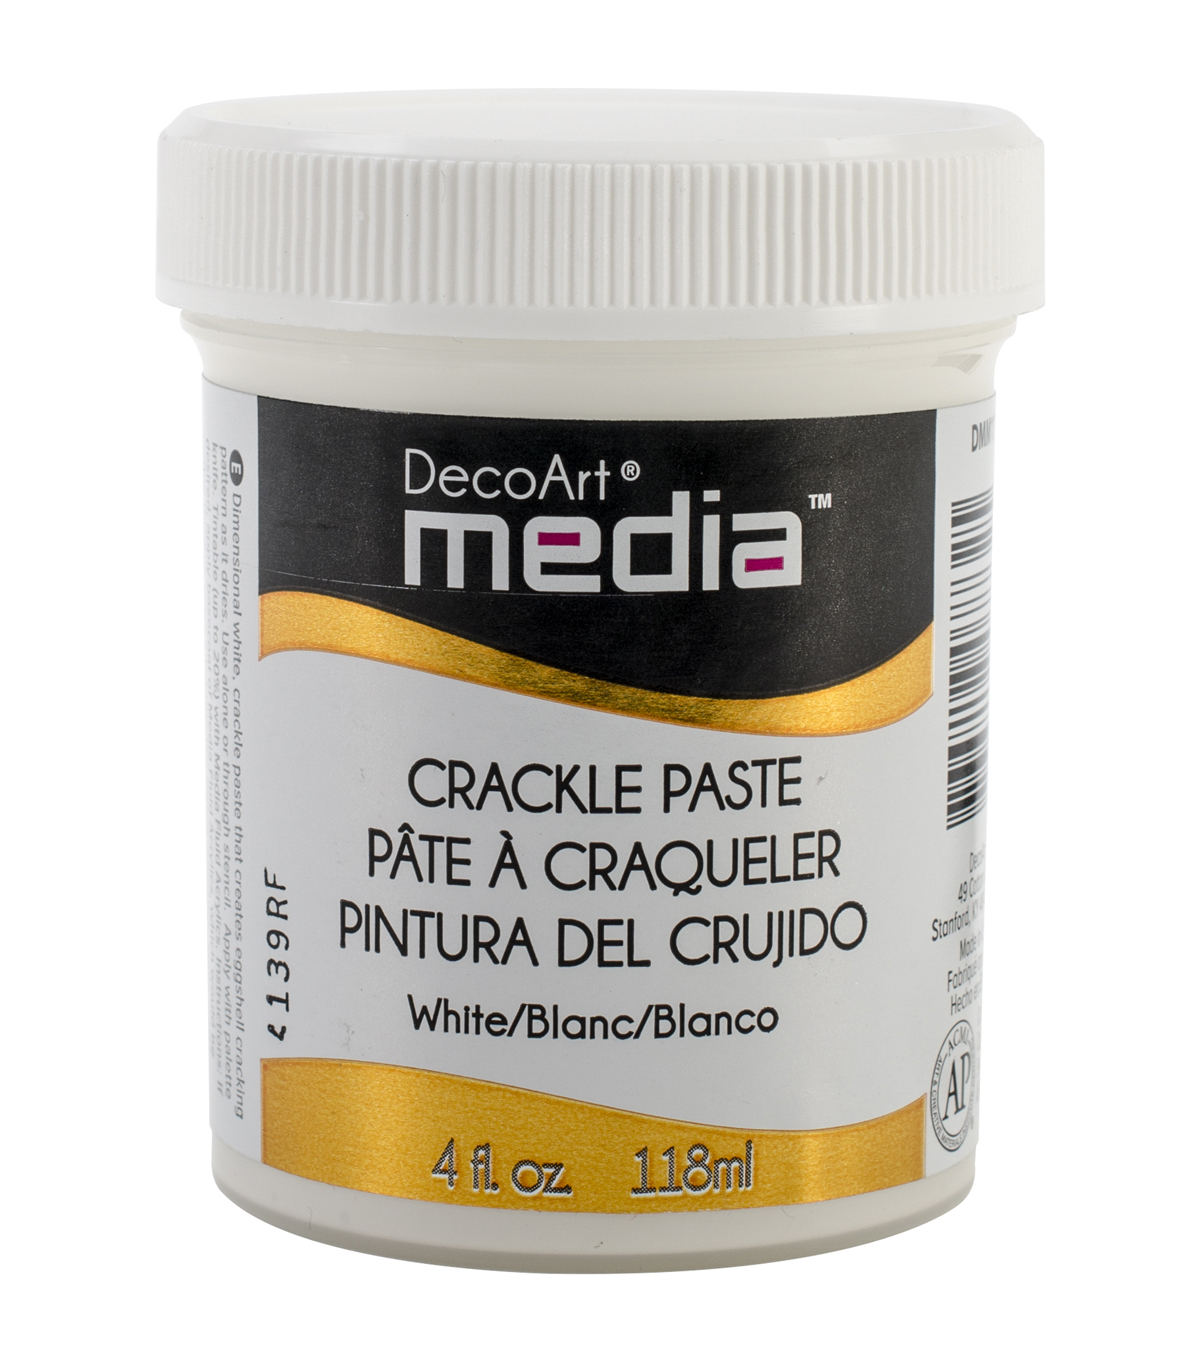 DecoArt Media Crackle Paste 4oz-White